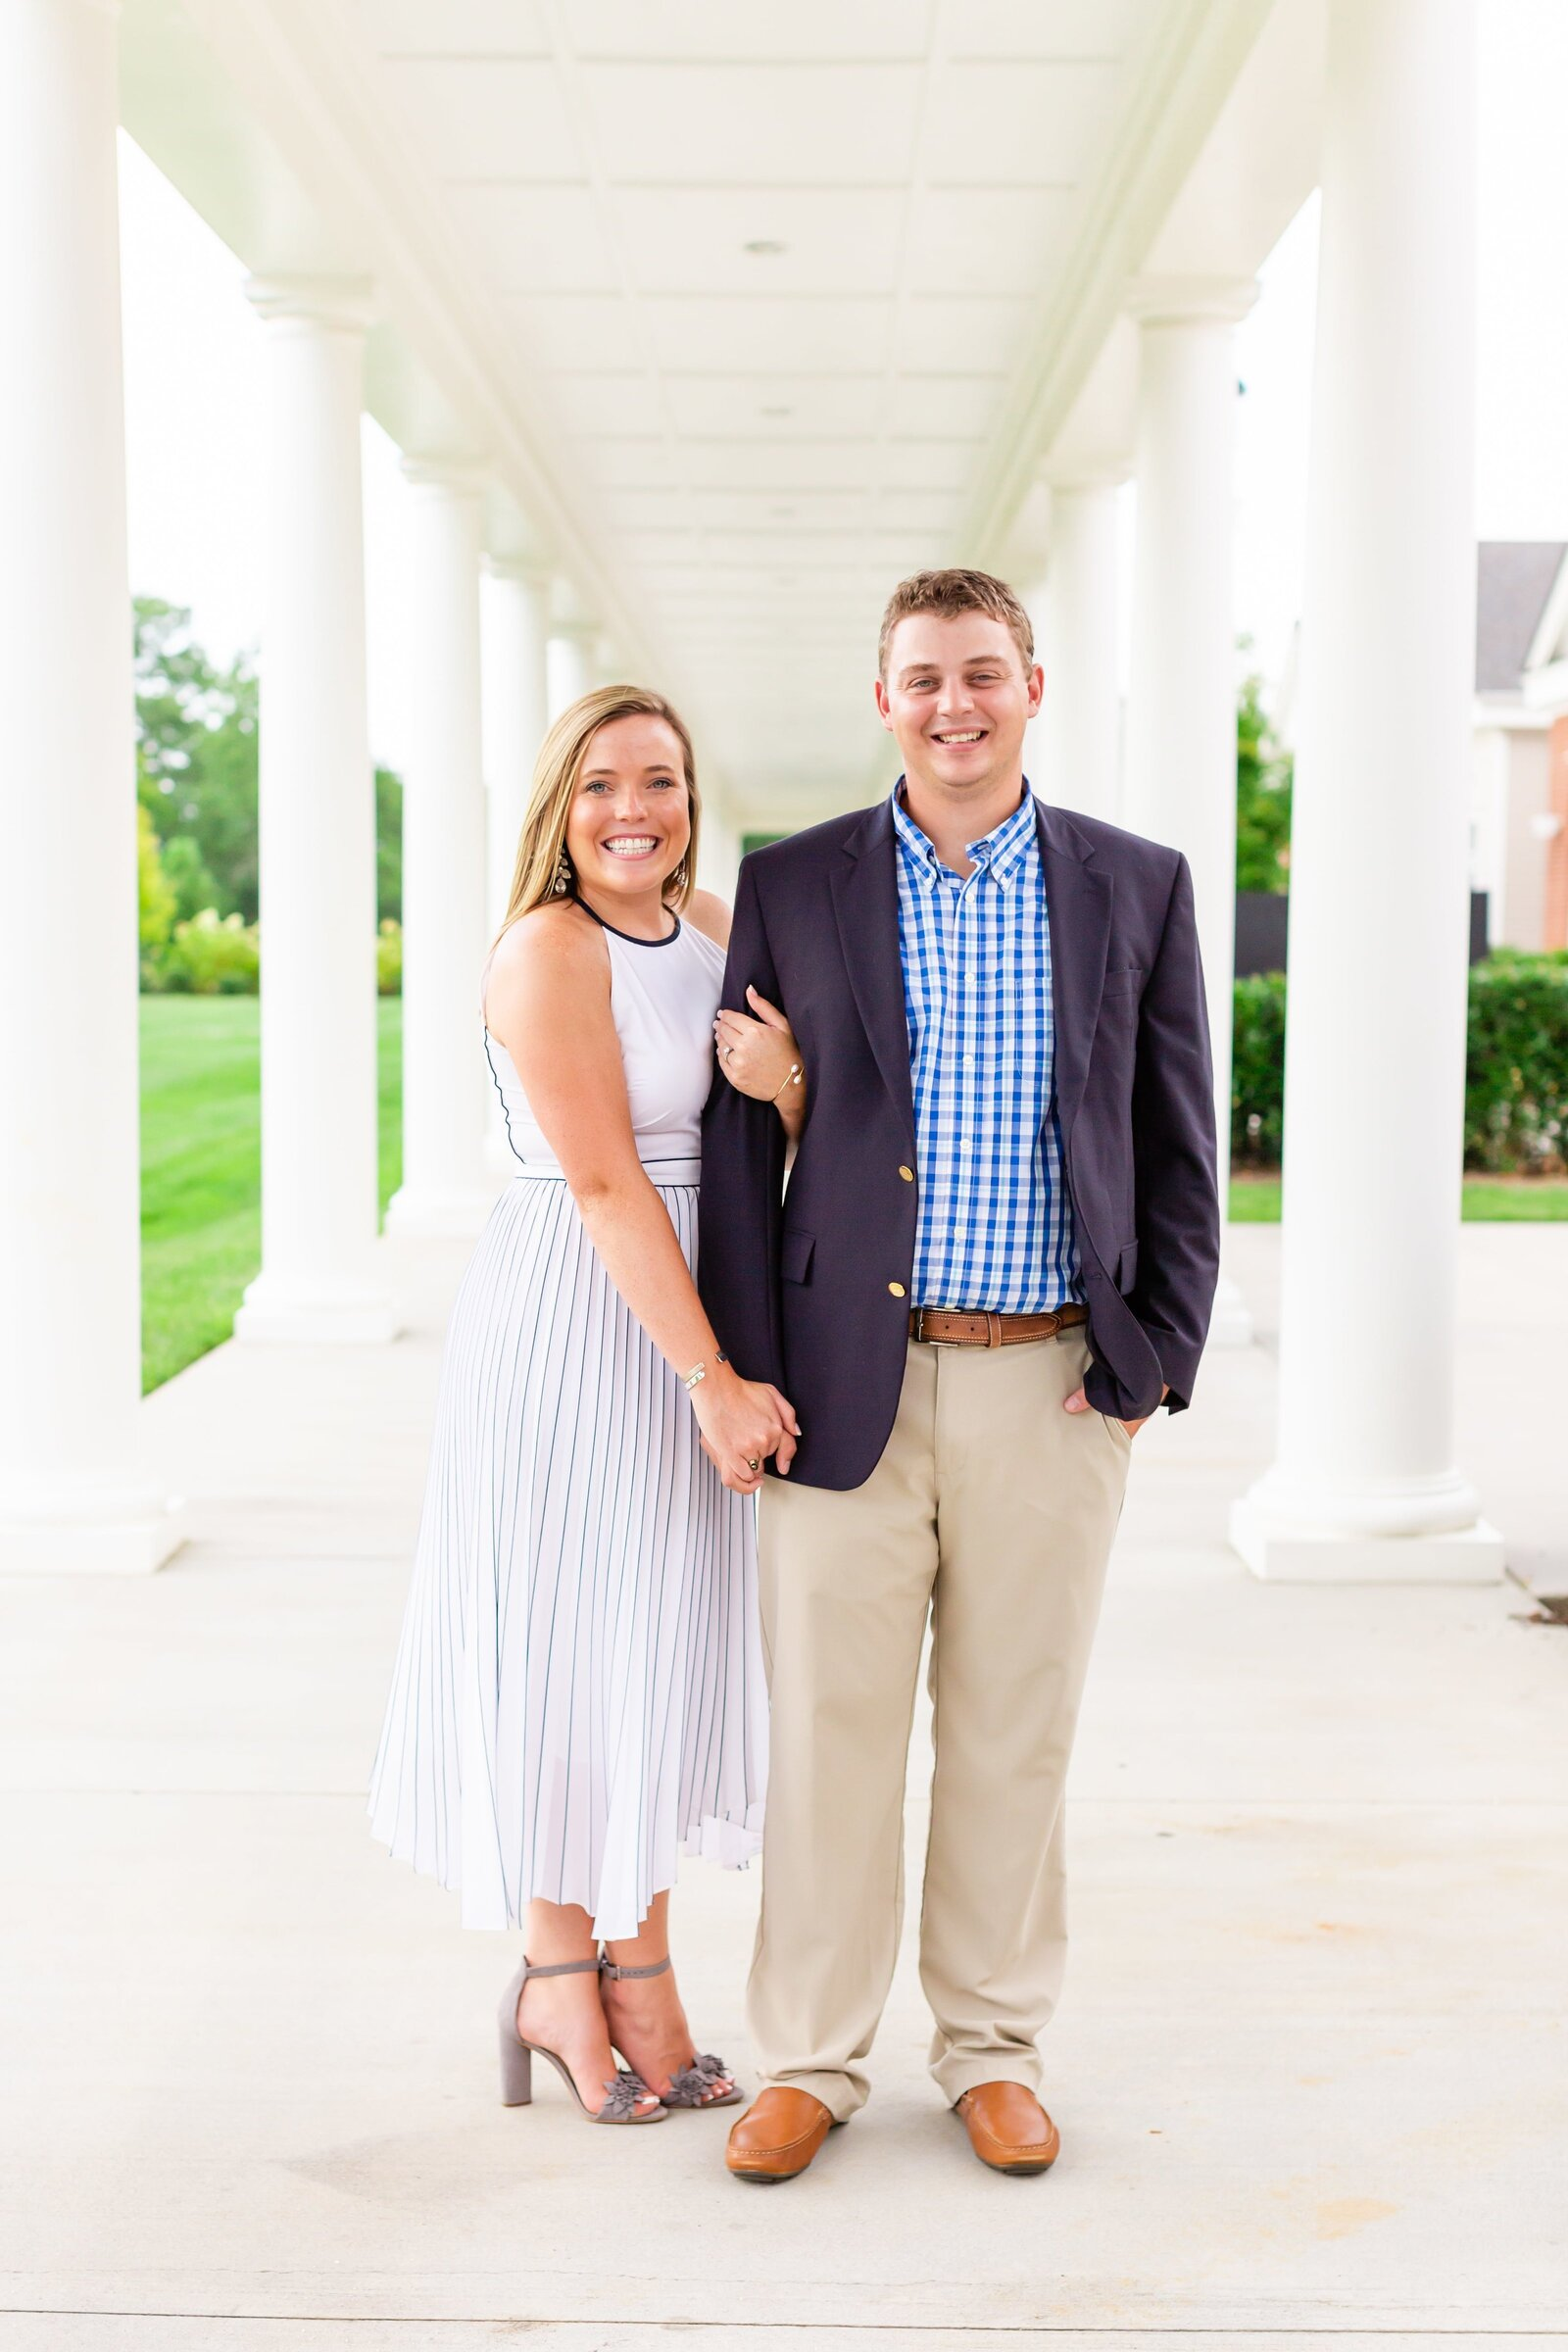 H & H Greenville engagement session by Charleston wedding photographer-7-min